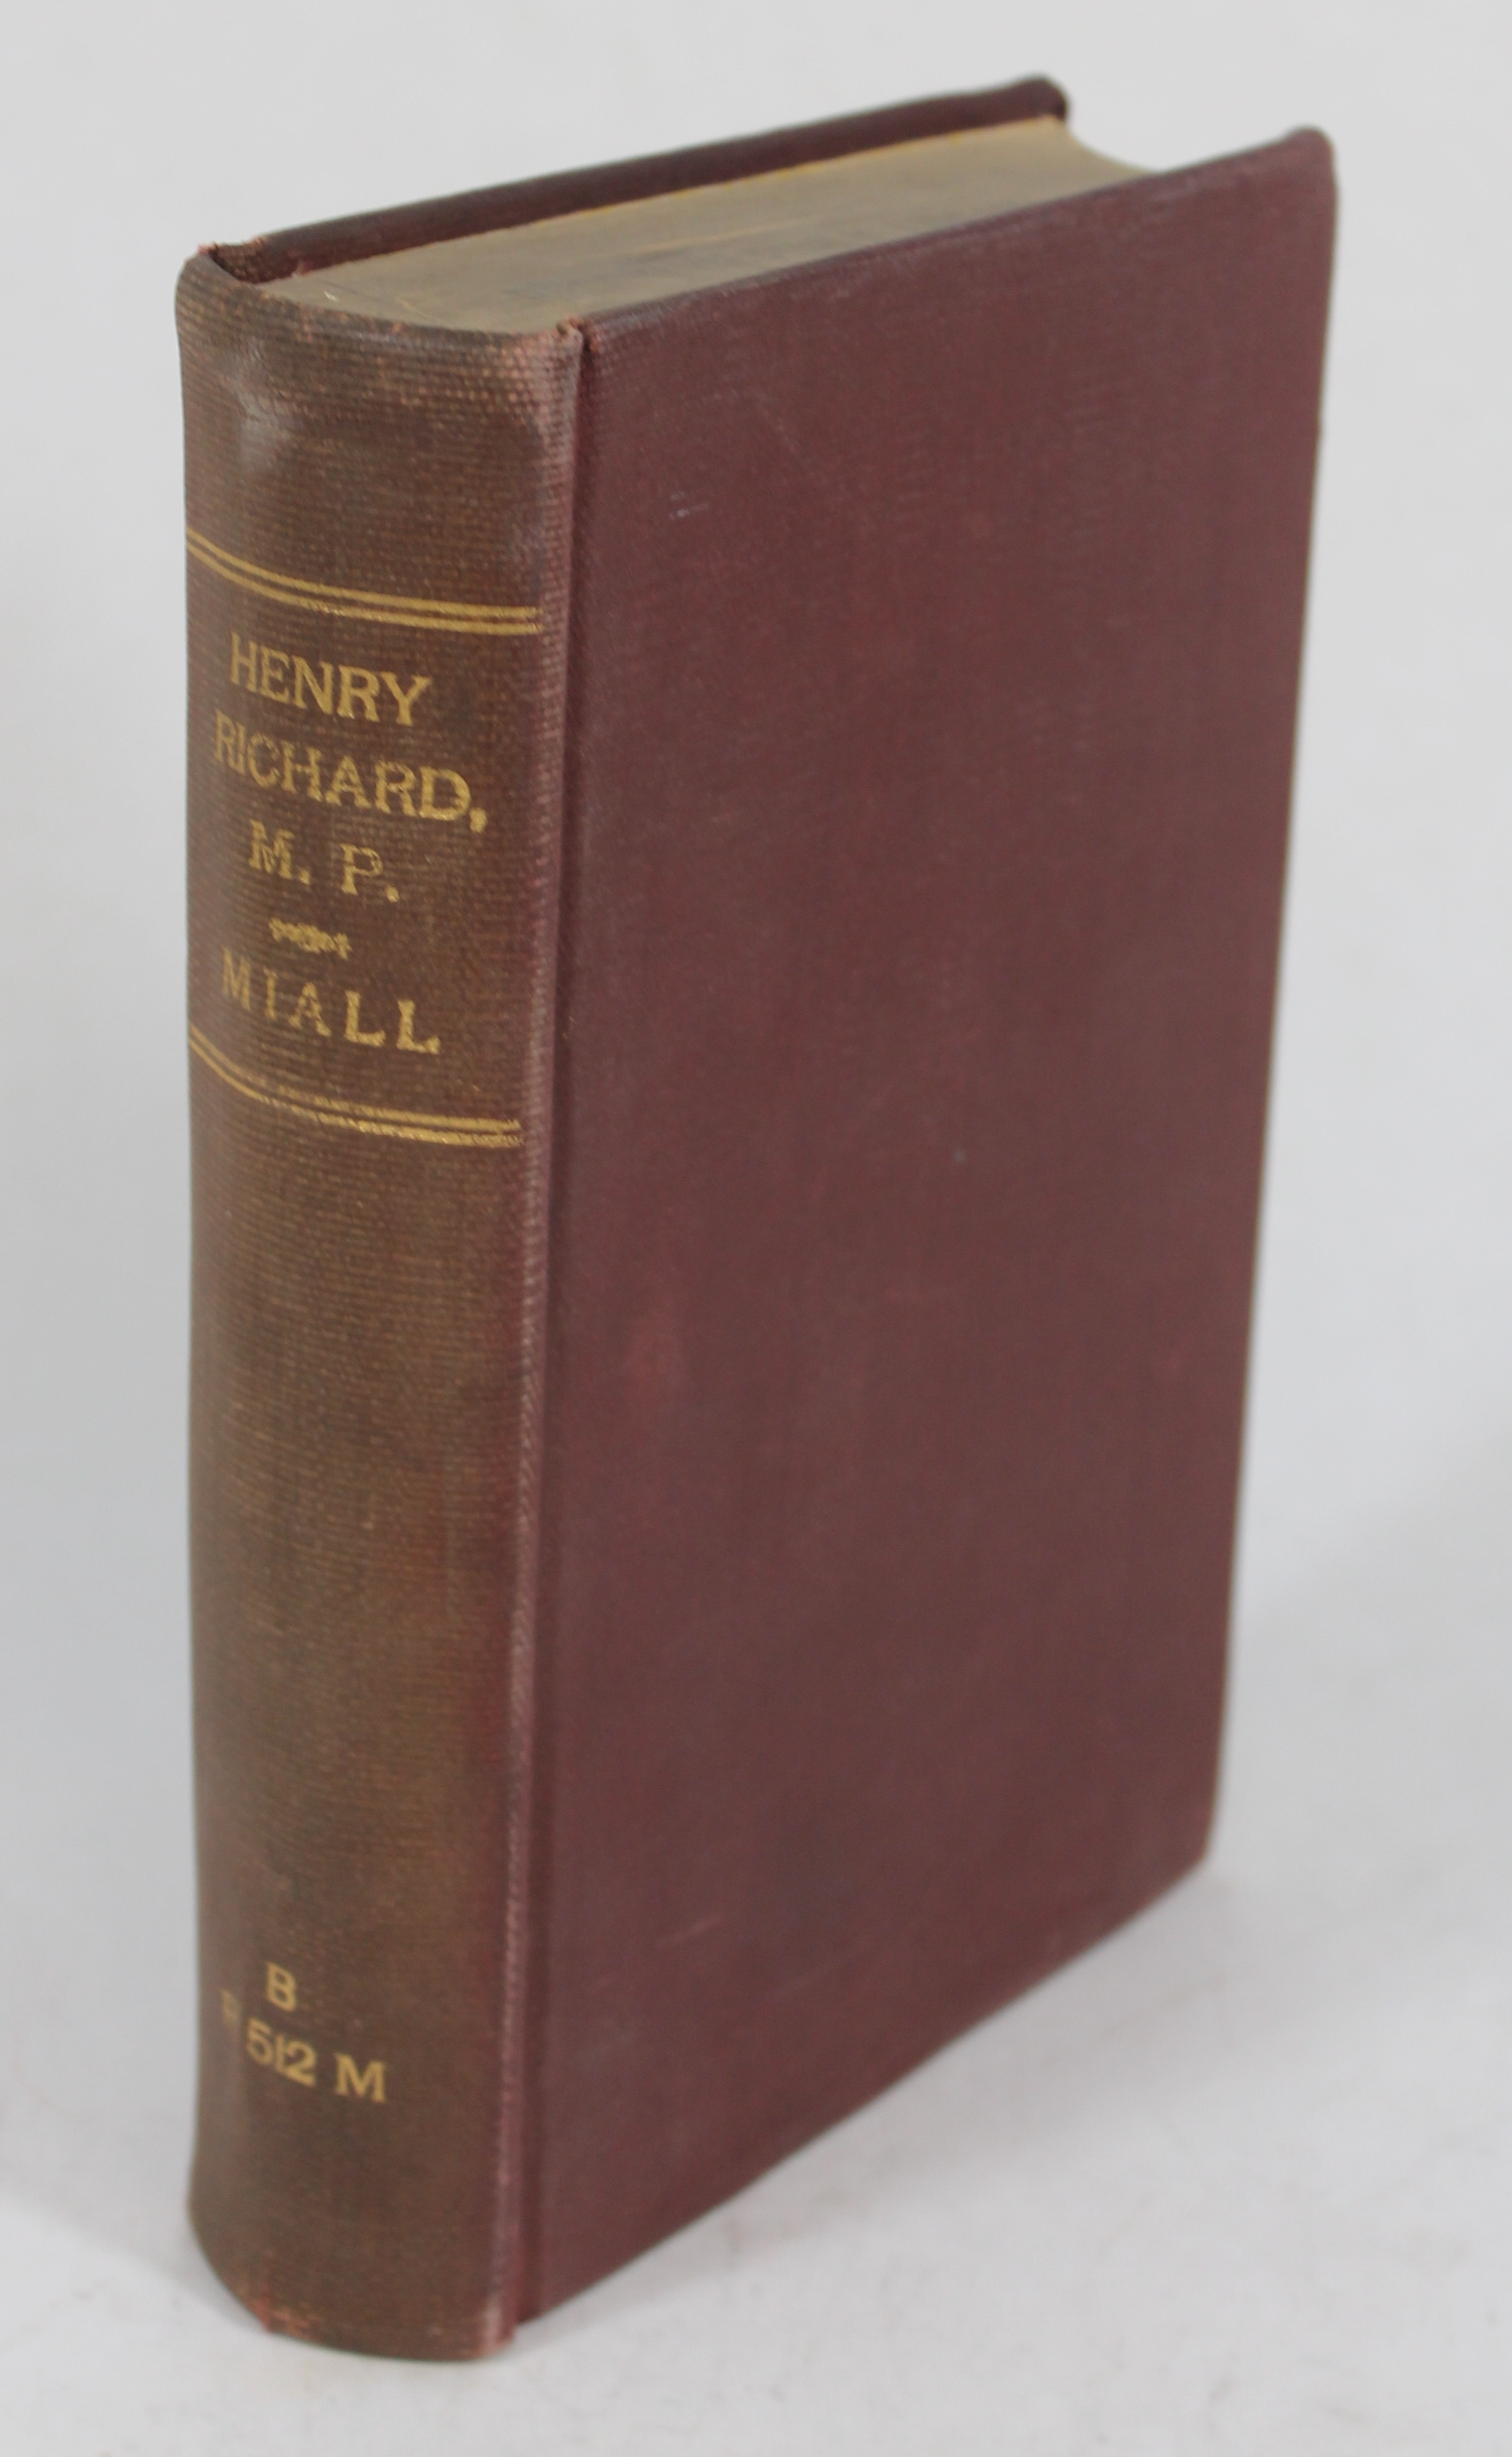 Henry Richard, M.P., a Biography BWB22723112